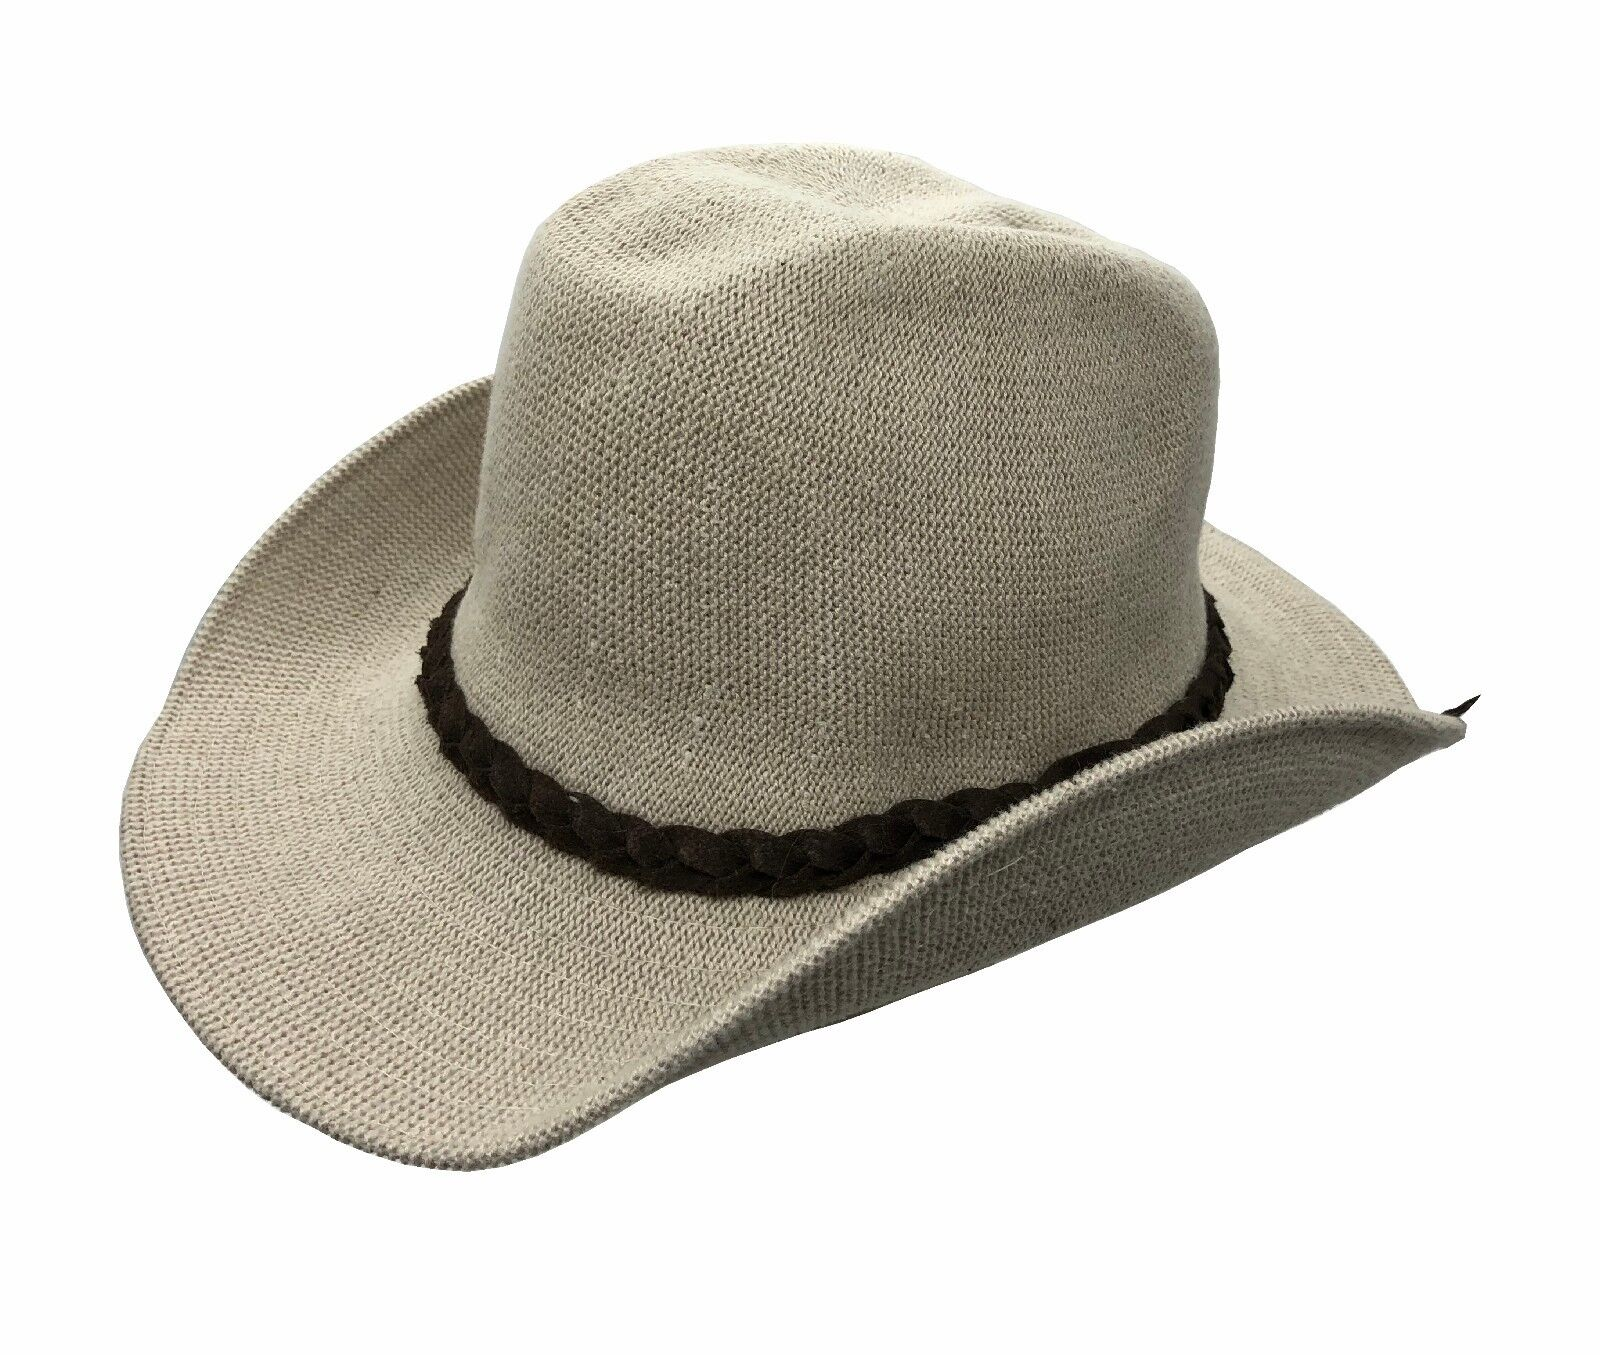 Click on the Image to Enlarge. Men s Jacaru Australia Soft Touch Sun Hat   70% Cotton  Wide Brim ... 79c730b2231b